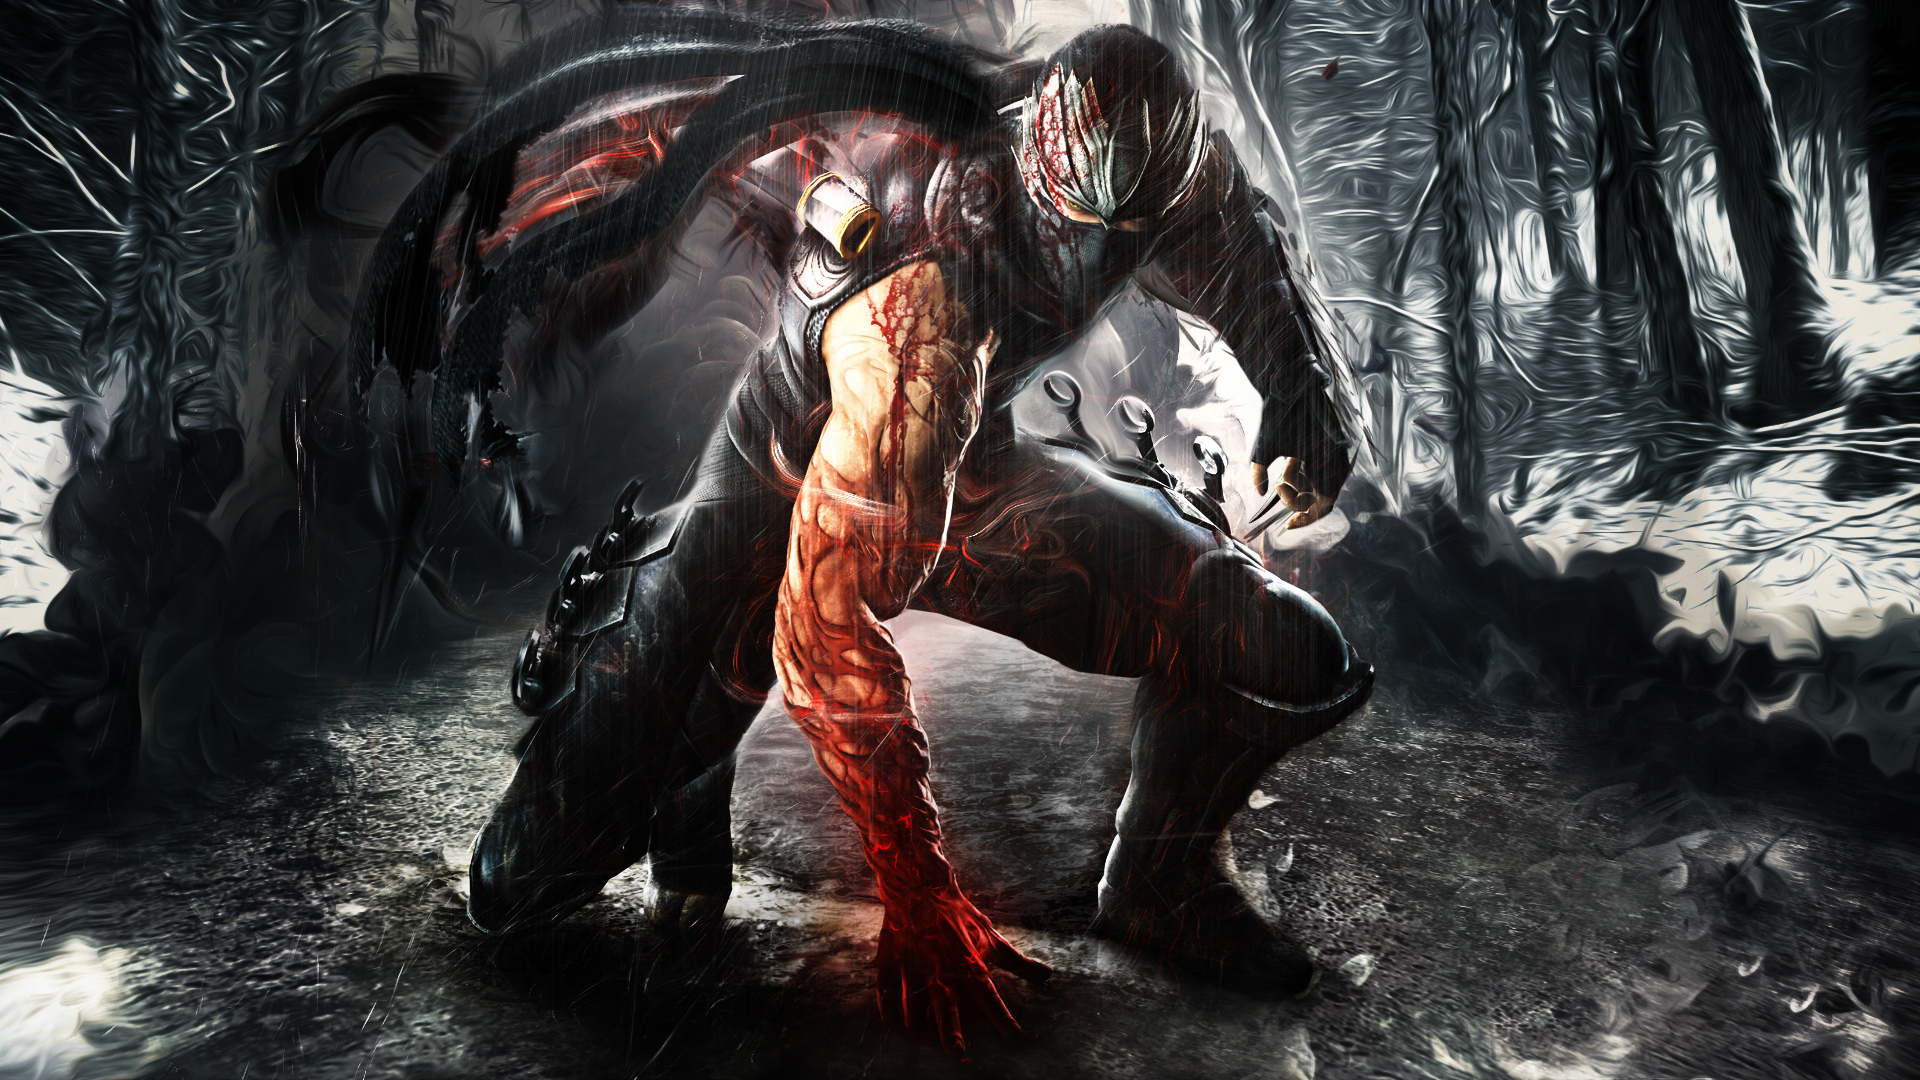 Ninja Gaiden Wallpaper HD